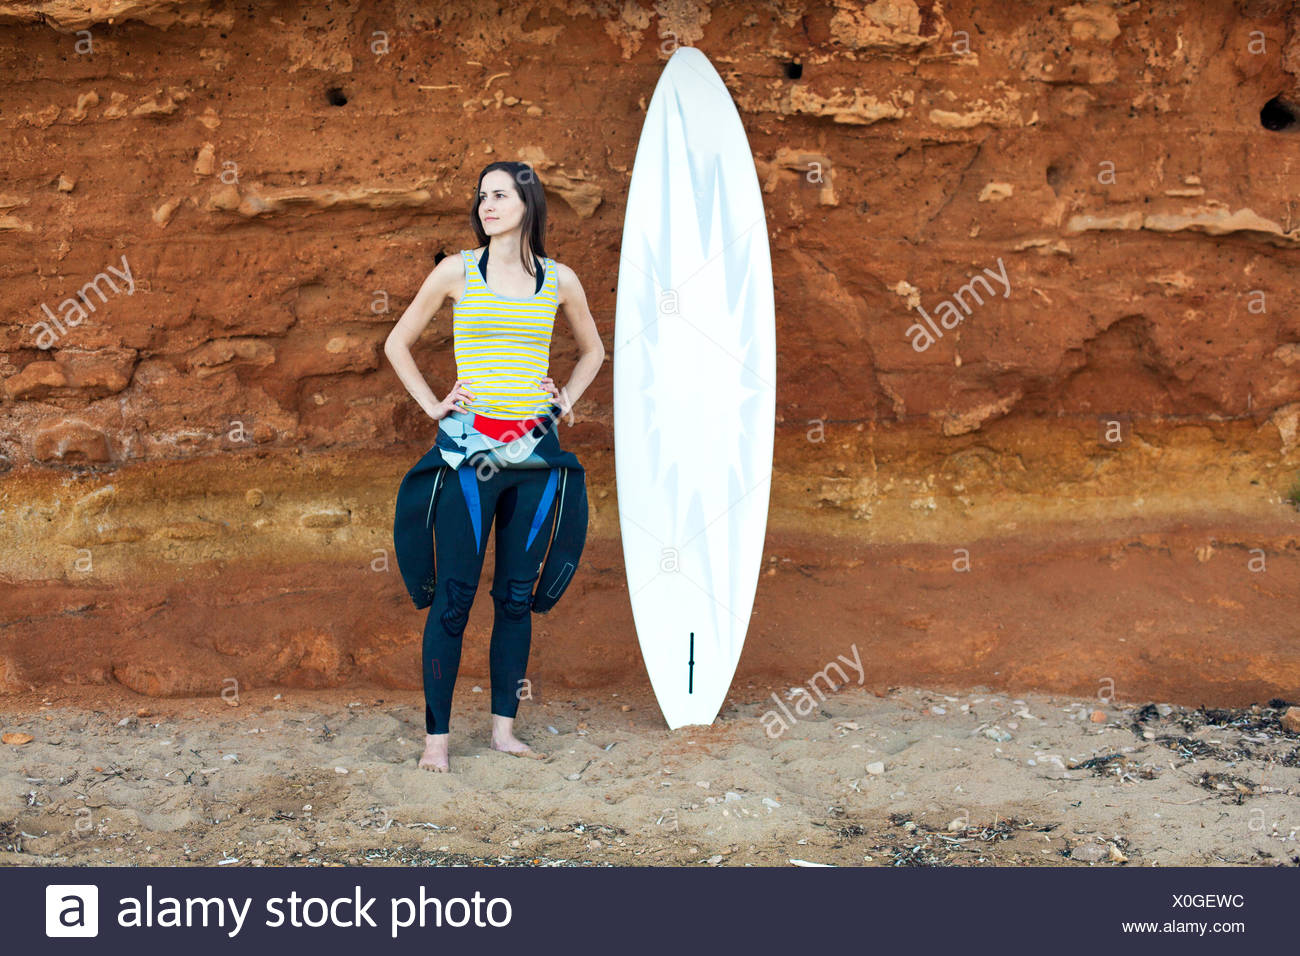 Female Surfer in front of rock - Stock Image